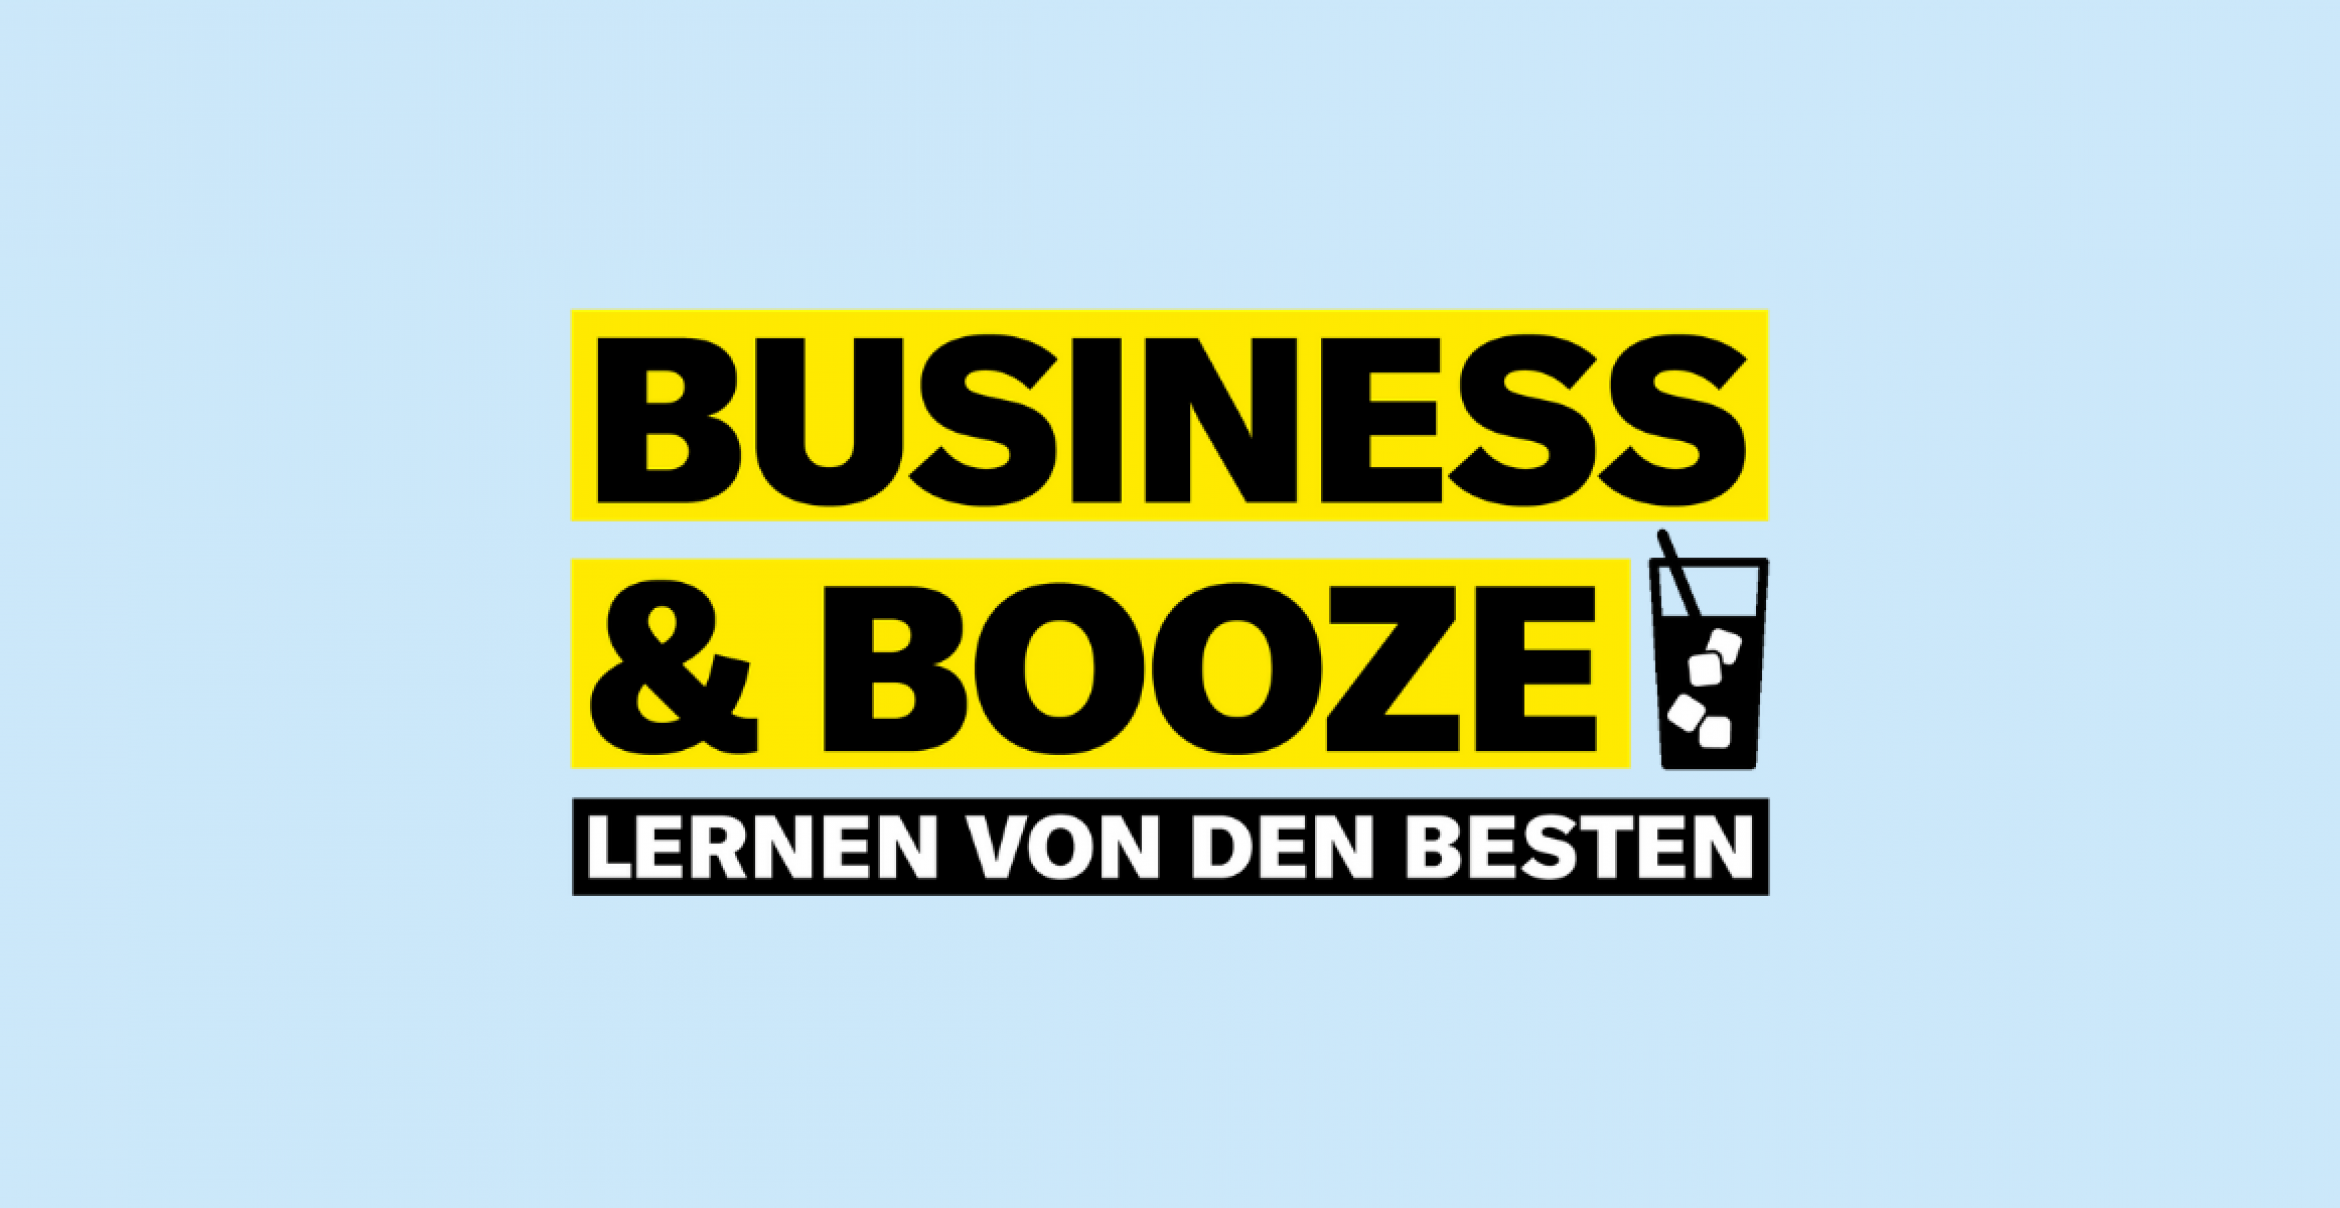 Unsere digitalen Sessions: BUSINESS & BOOZE